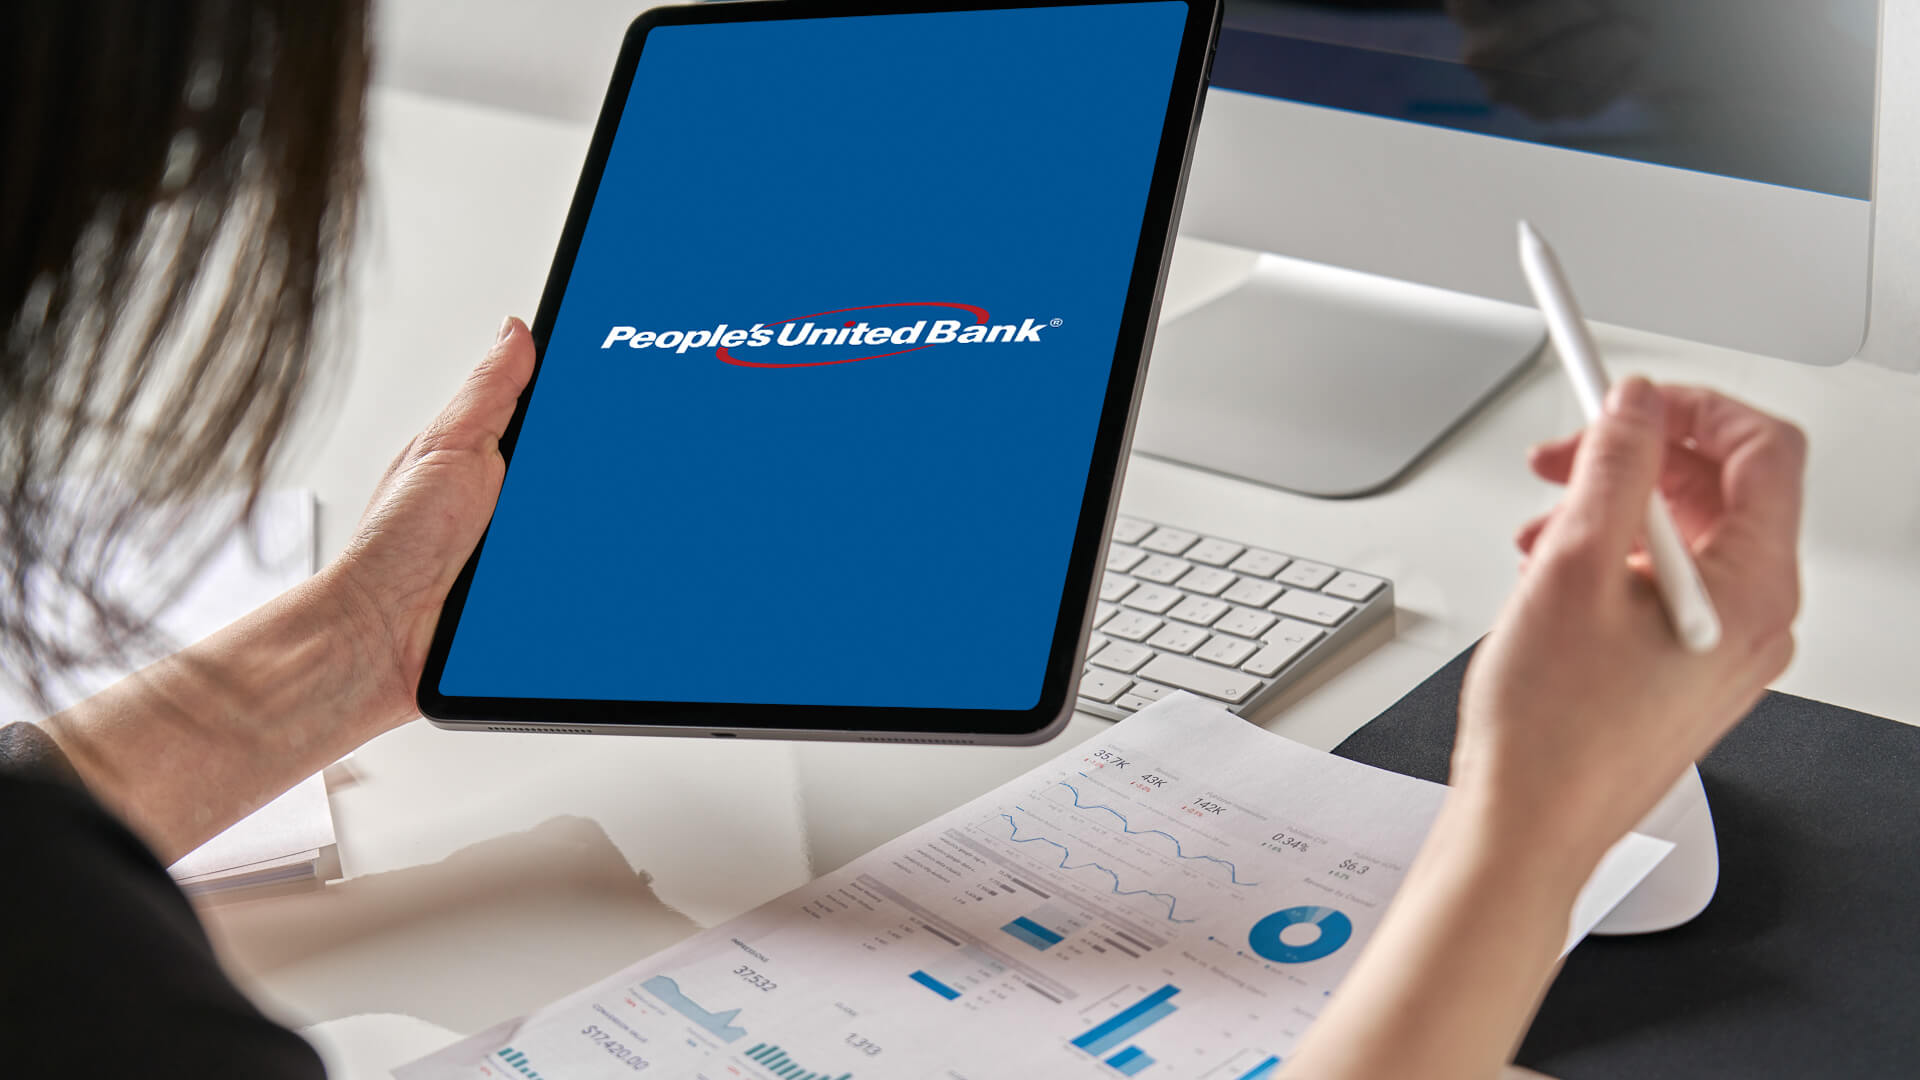 People's United bank mobile app